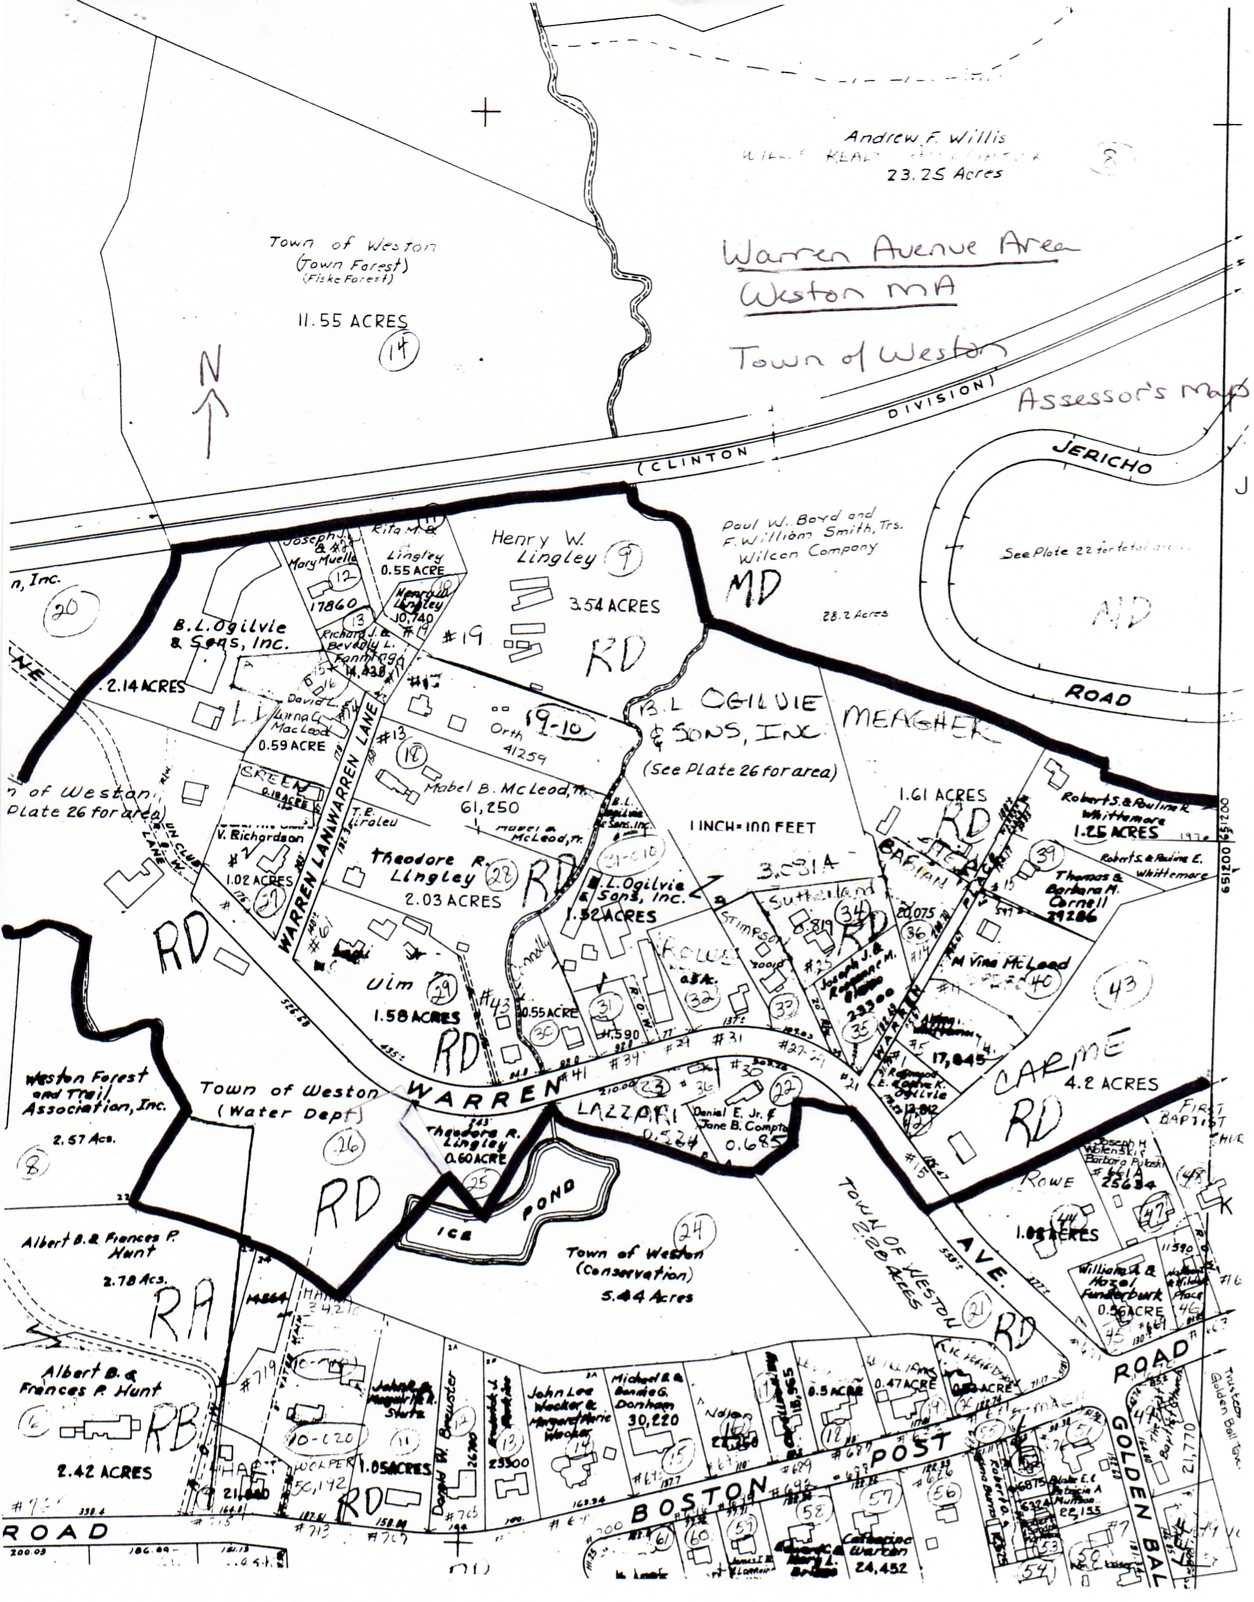 Sketch map of Warren Avenue Area